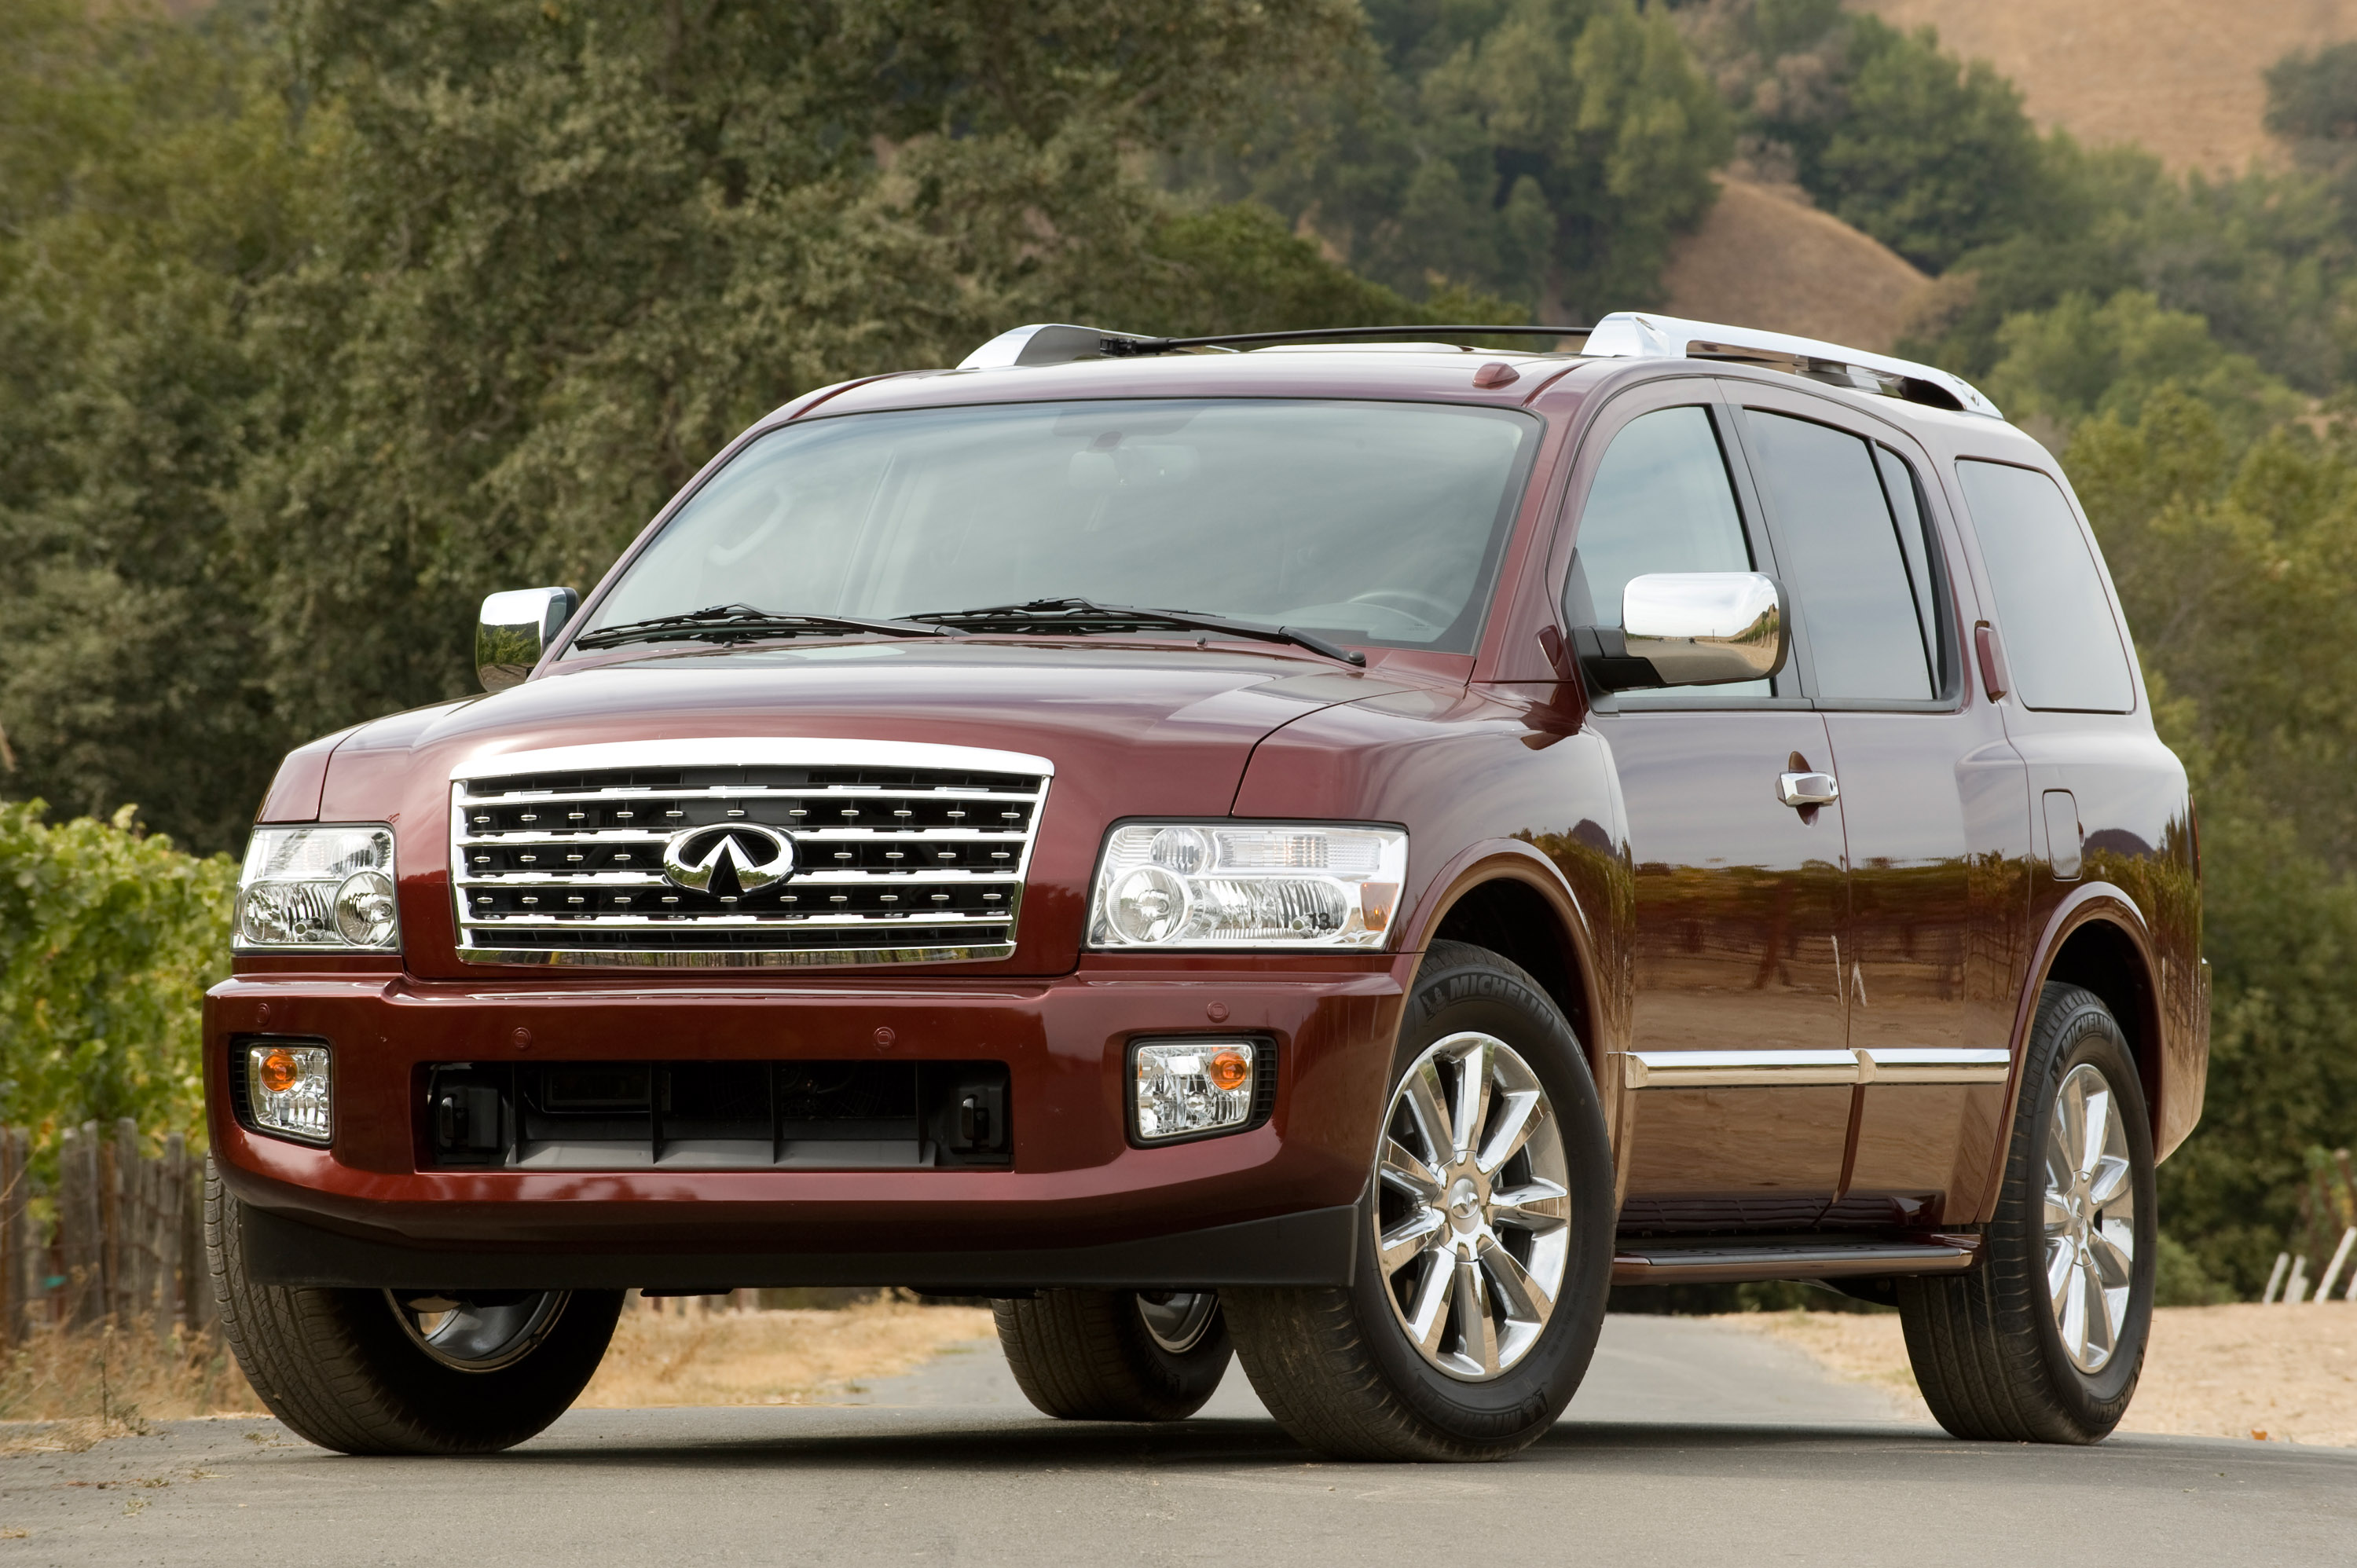 exterior base suv price reviews front photos view side features infiniti infinity